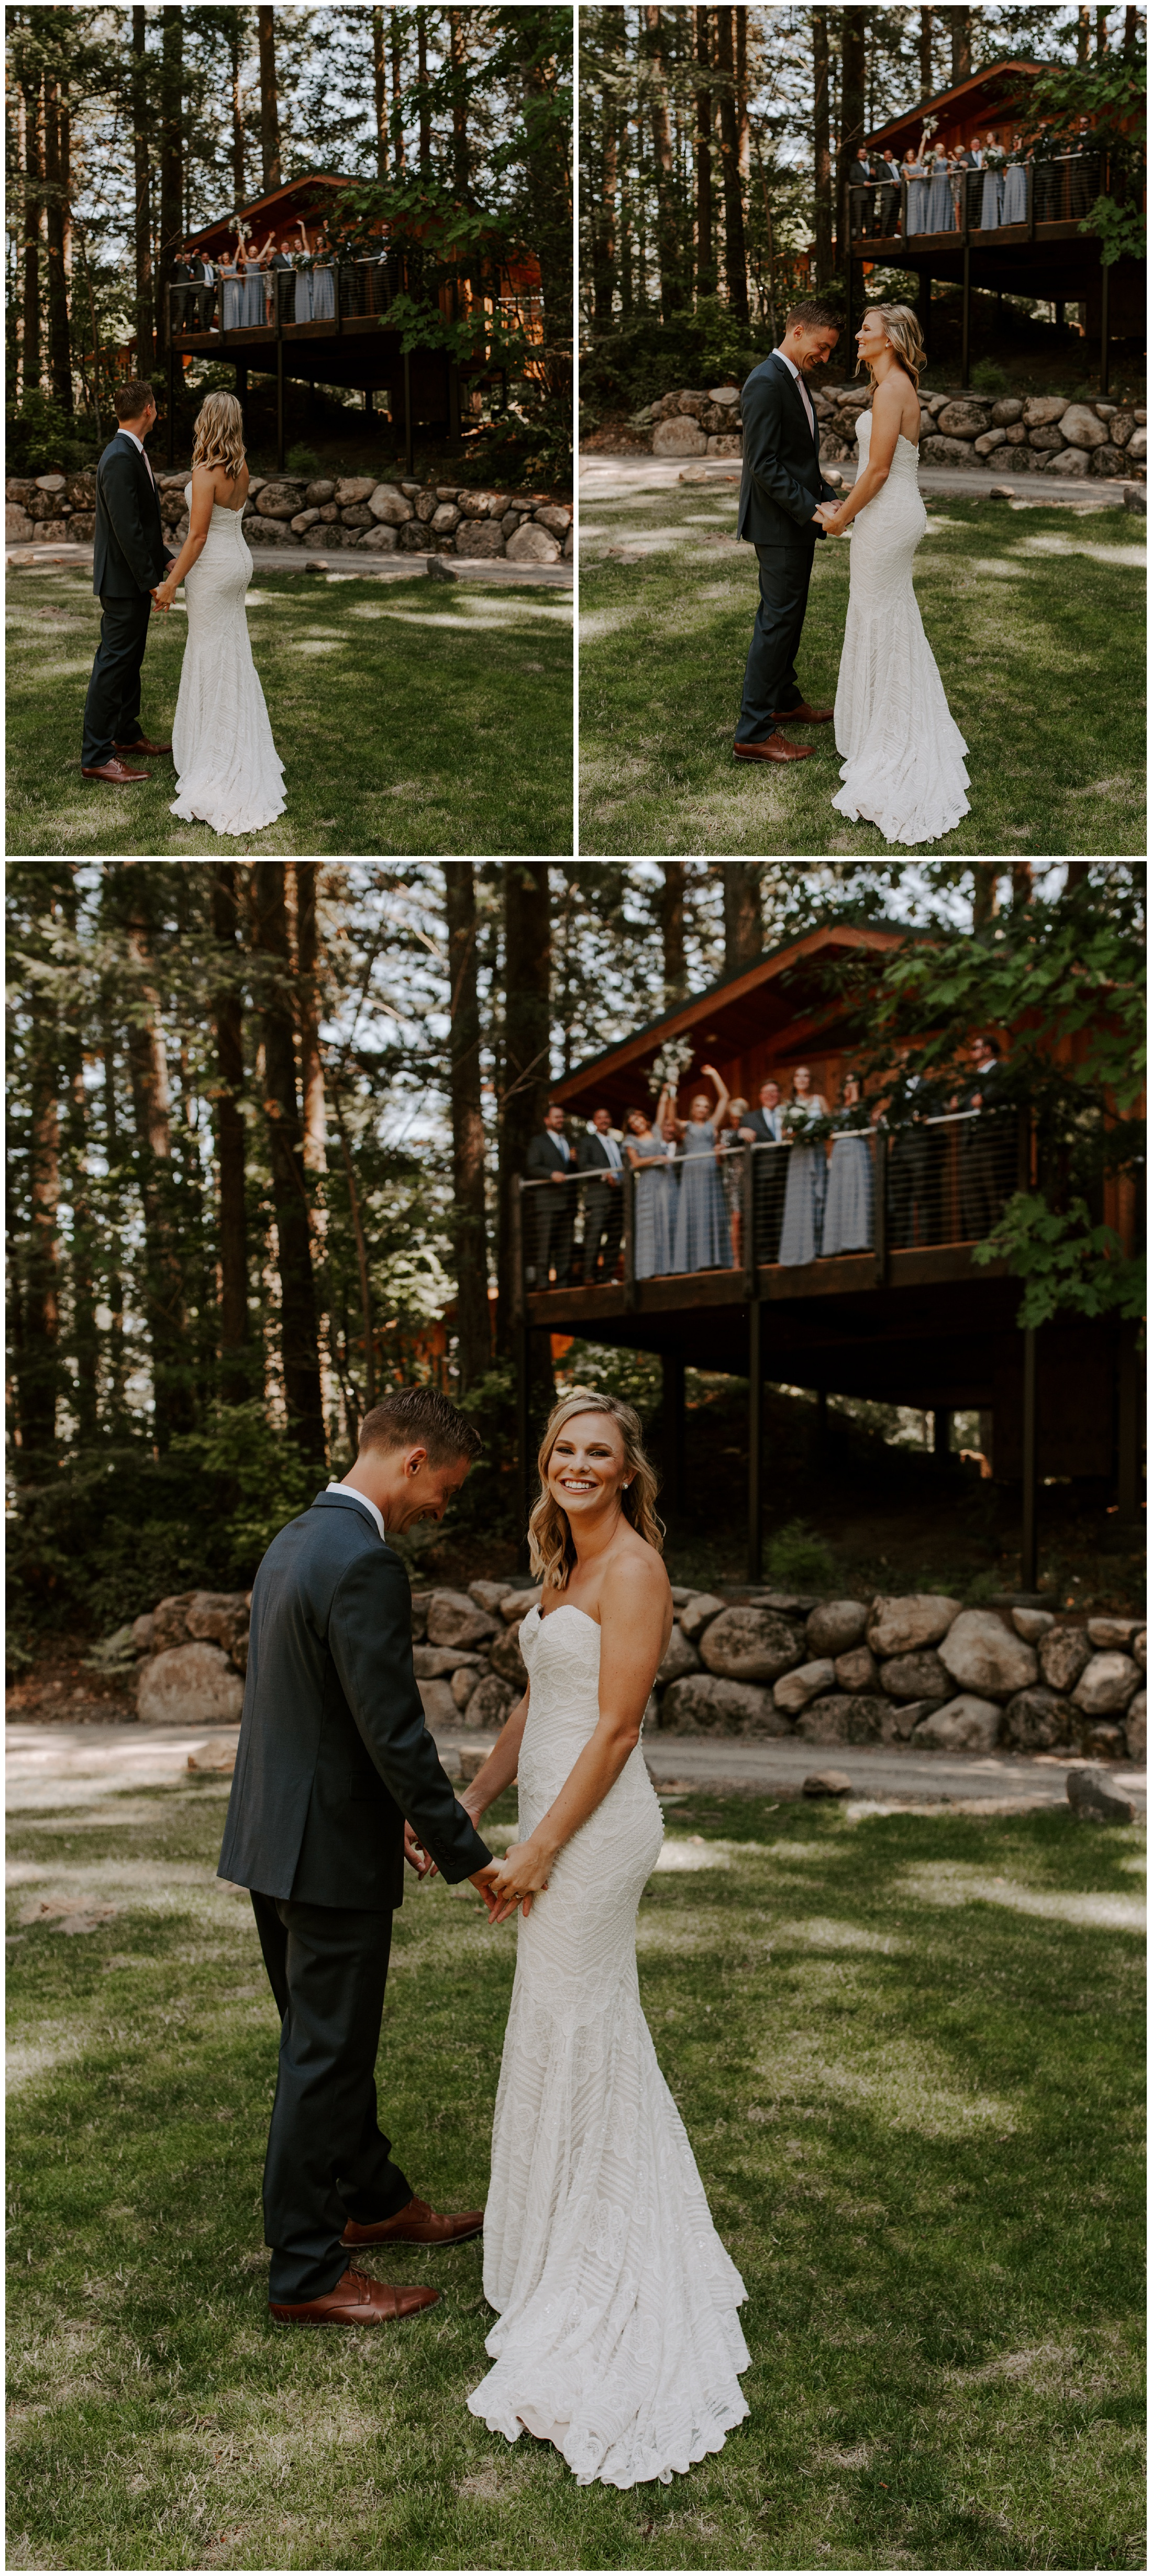 Madison_and_Reed_-_Couple_Formals-62.jpg